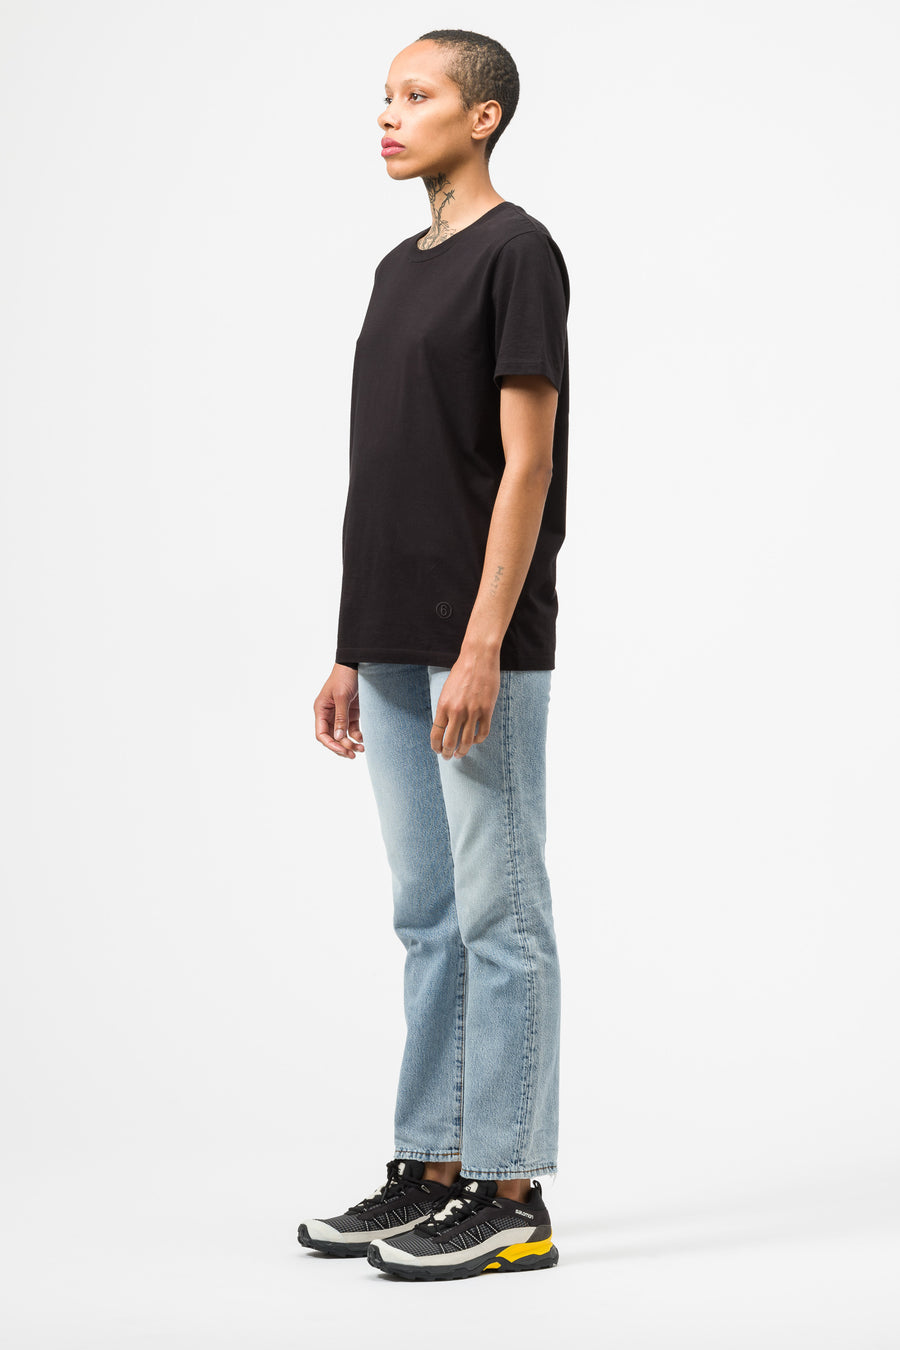 Maison Margiela MM6 T-Shirt in Black - Notre